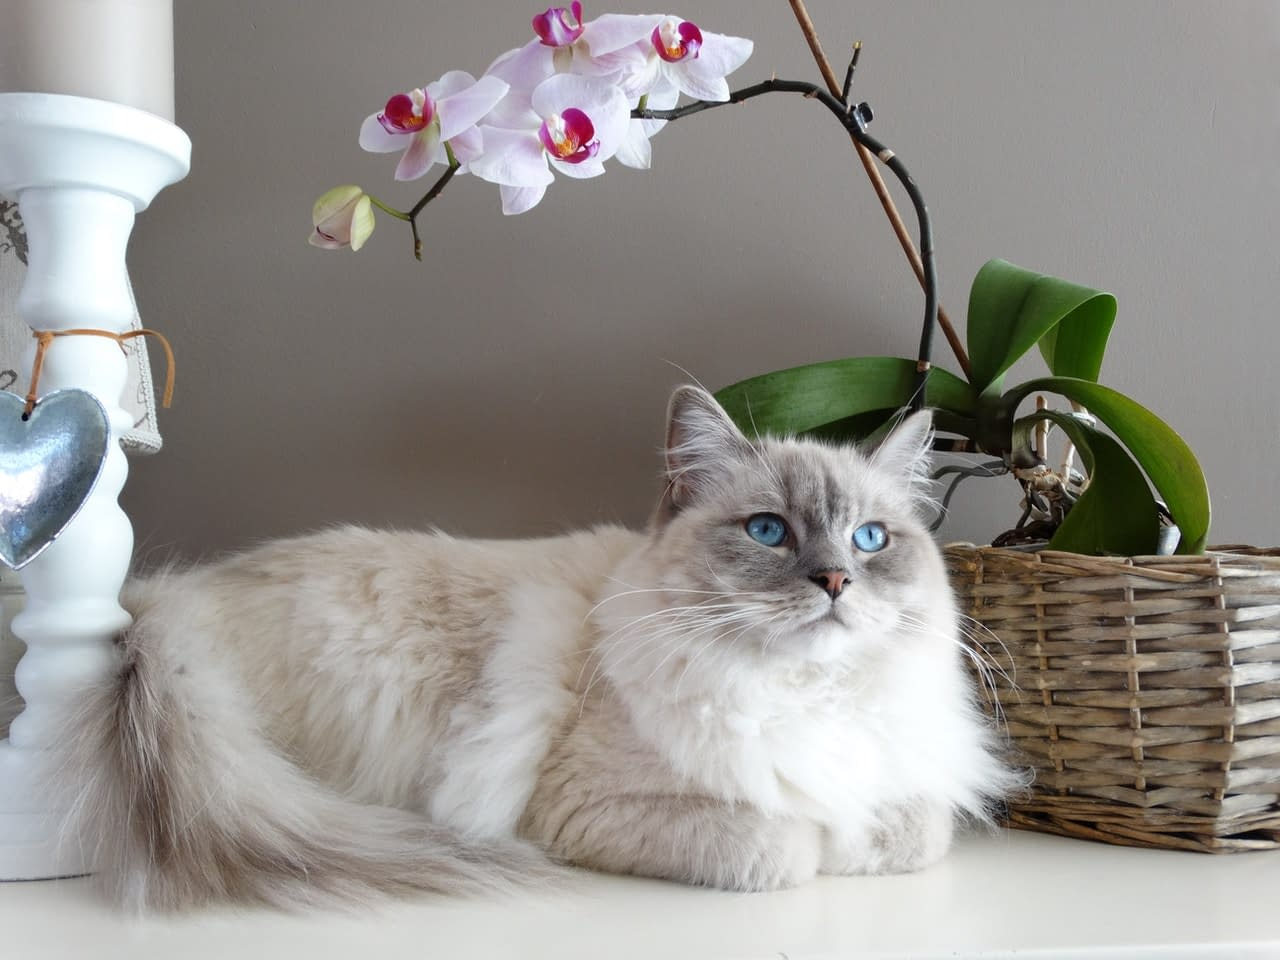 Adorable cat with blue eyes lying near a basket